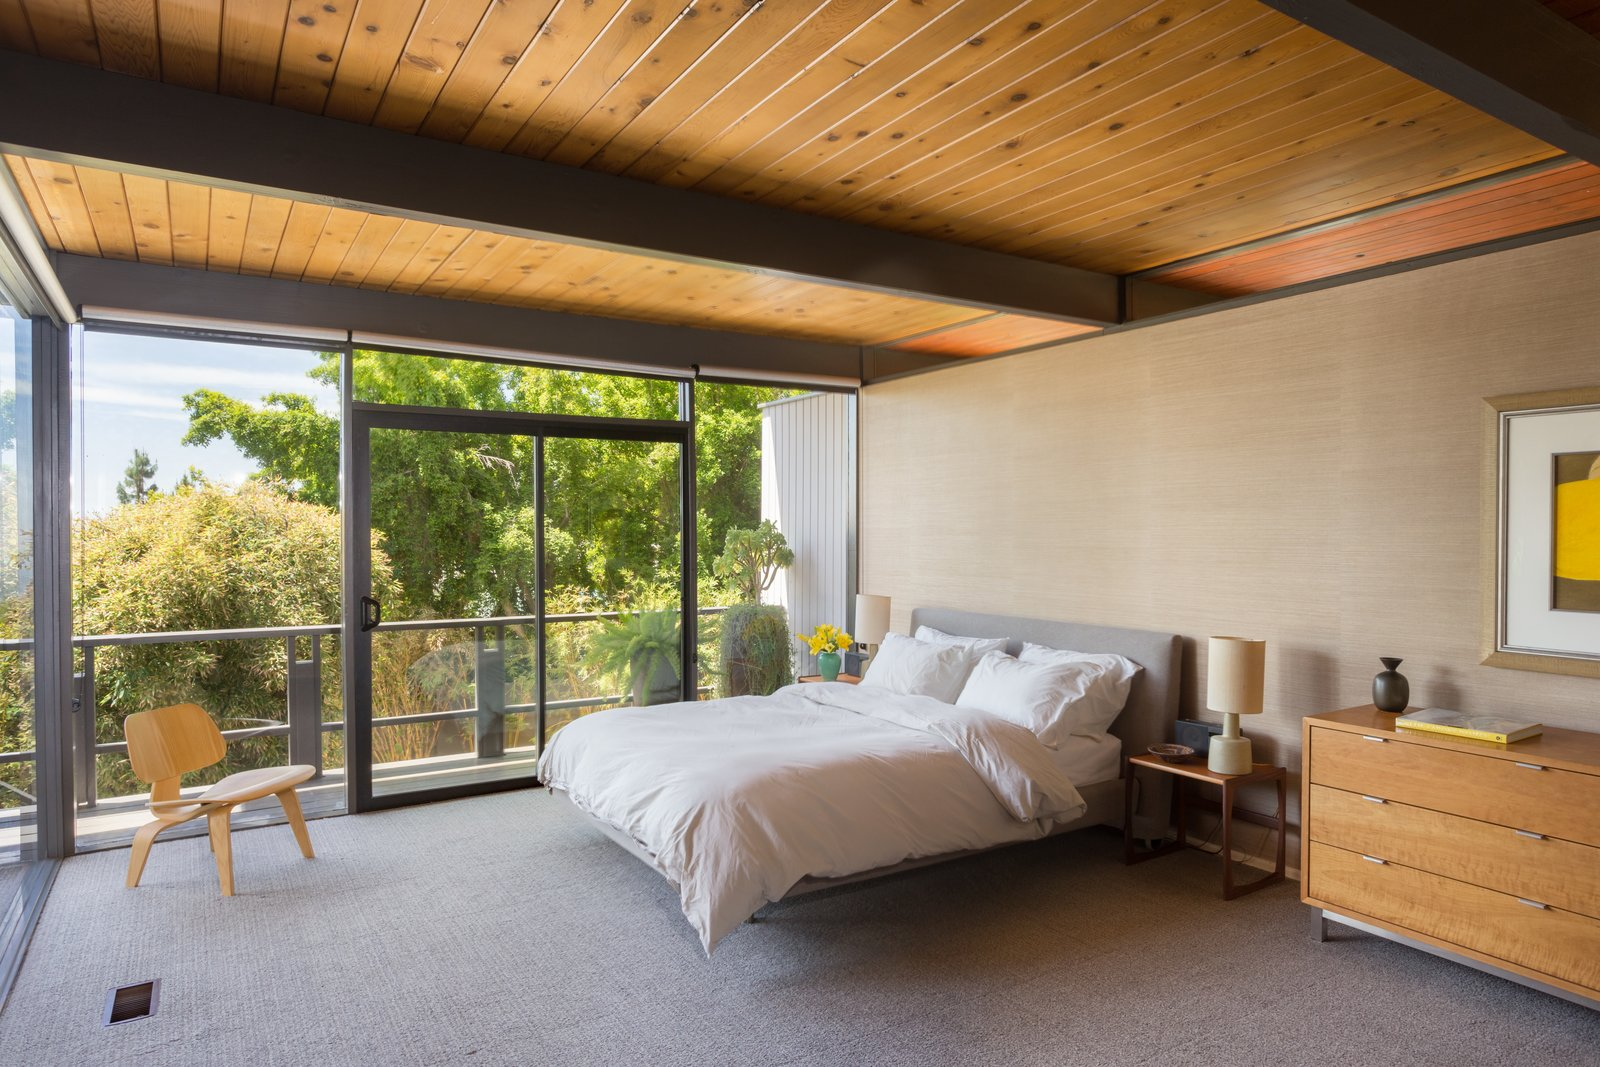 Photo 7 of 12 in This Post-and-Beam in Pasadena Offers Classic California Living For $1.9M